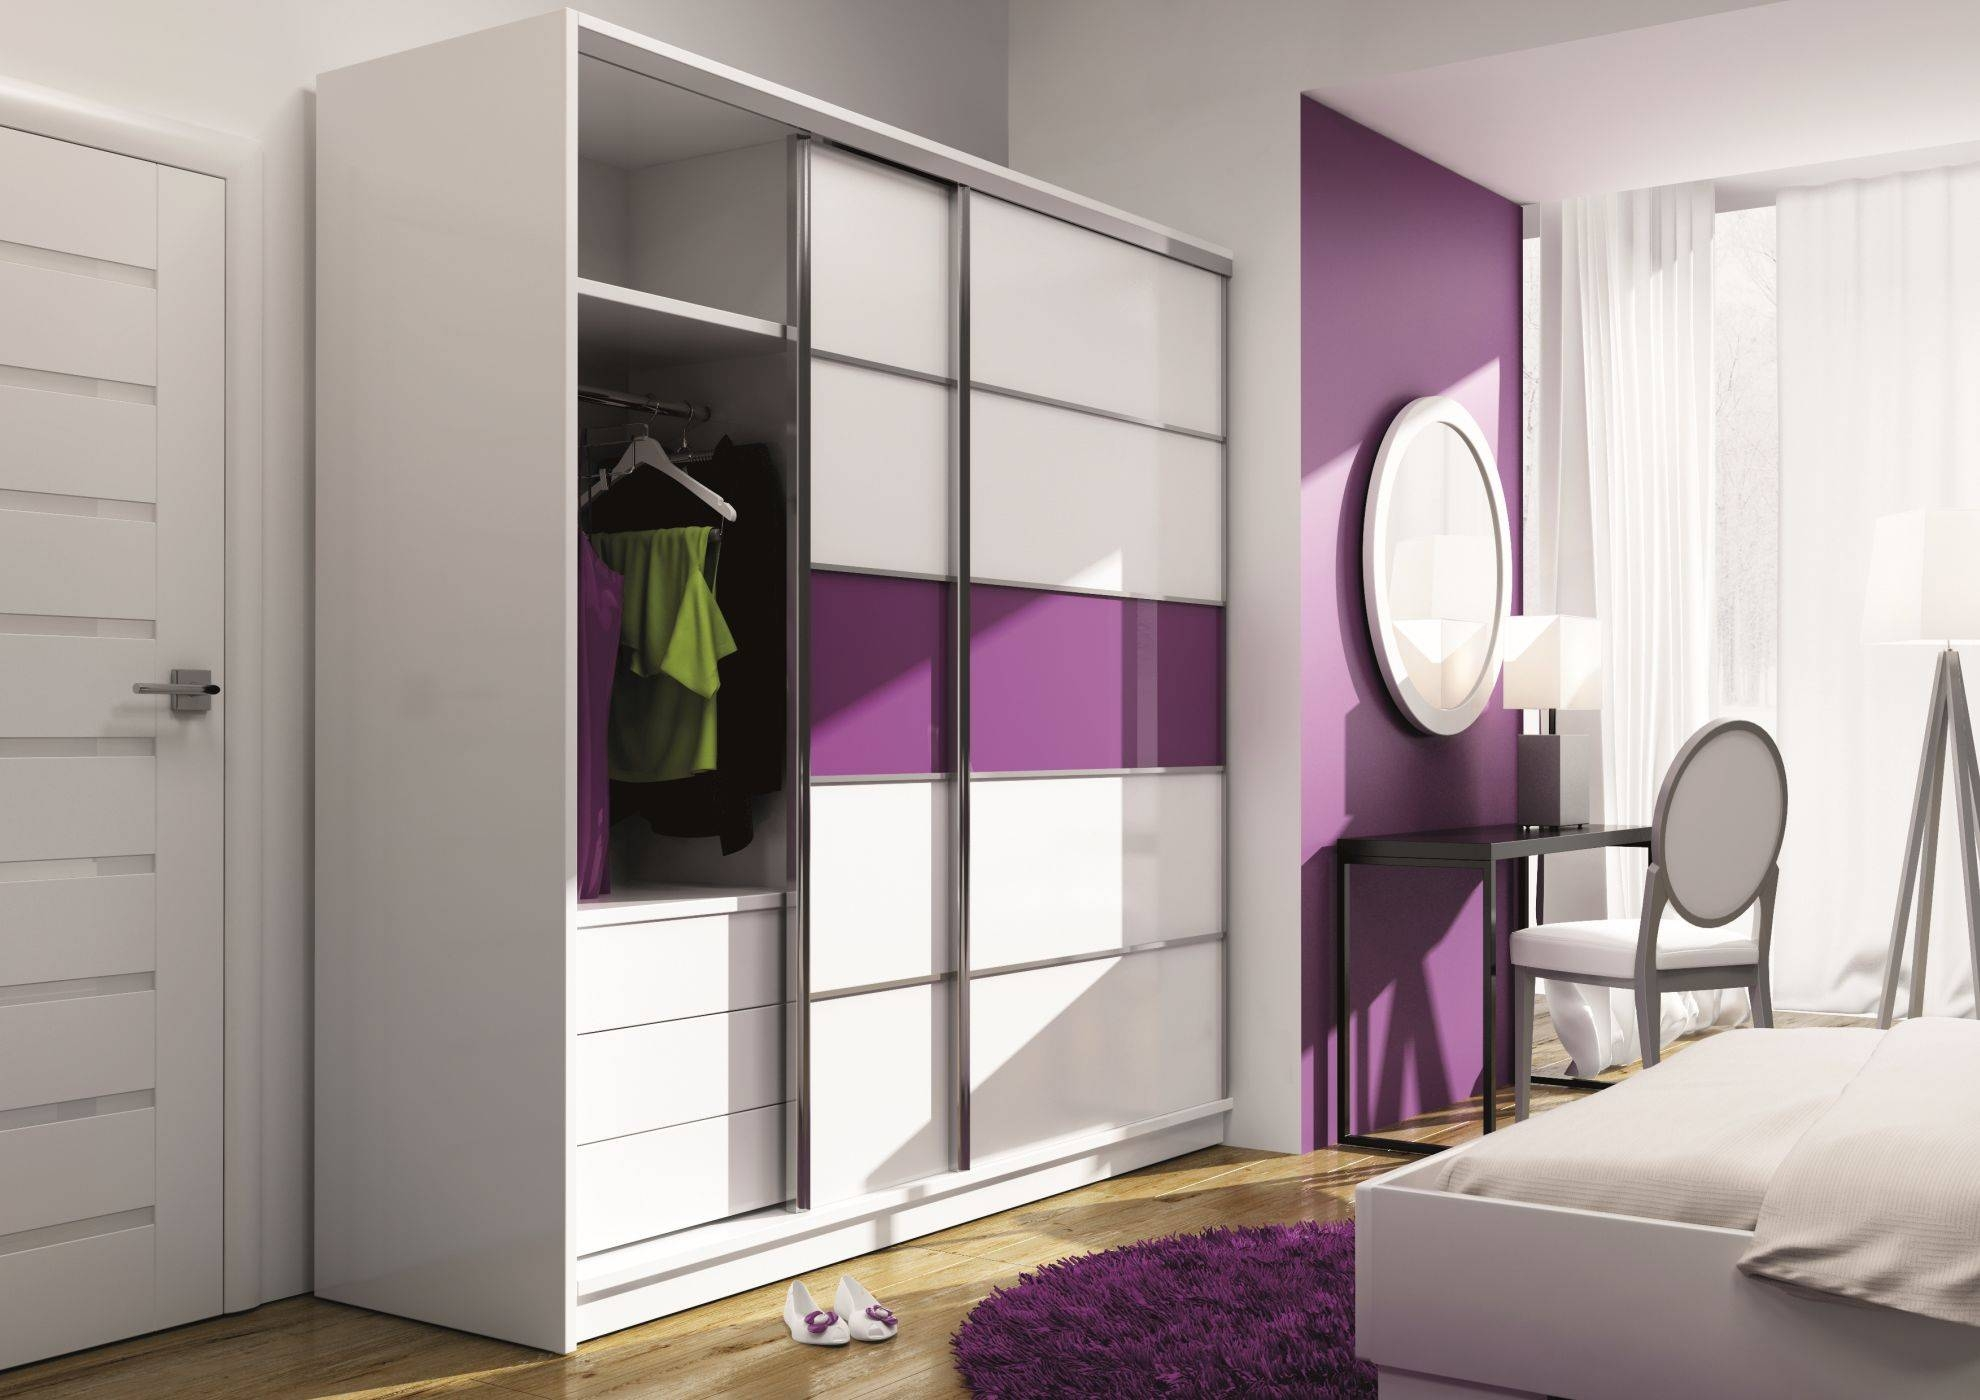 Bedroom Furniture : Walk In Wardrobe Diy Fitted Wardrobes Shabby intended for Large Shabby Chic Wardrobes (Image 1 of 15)